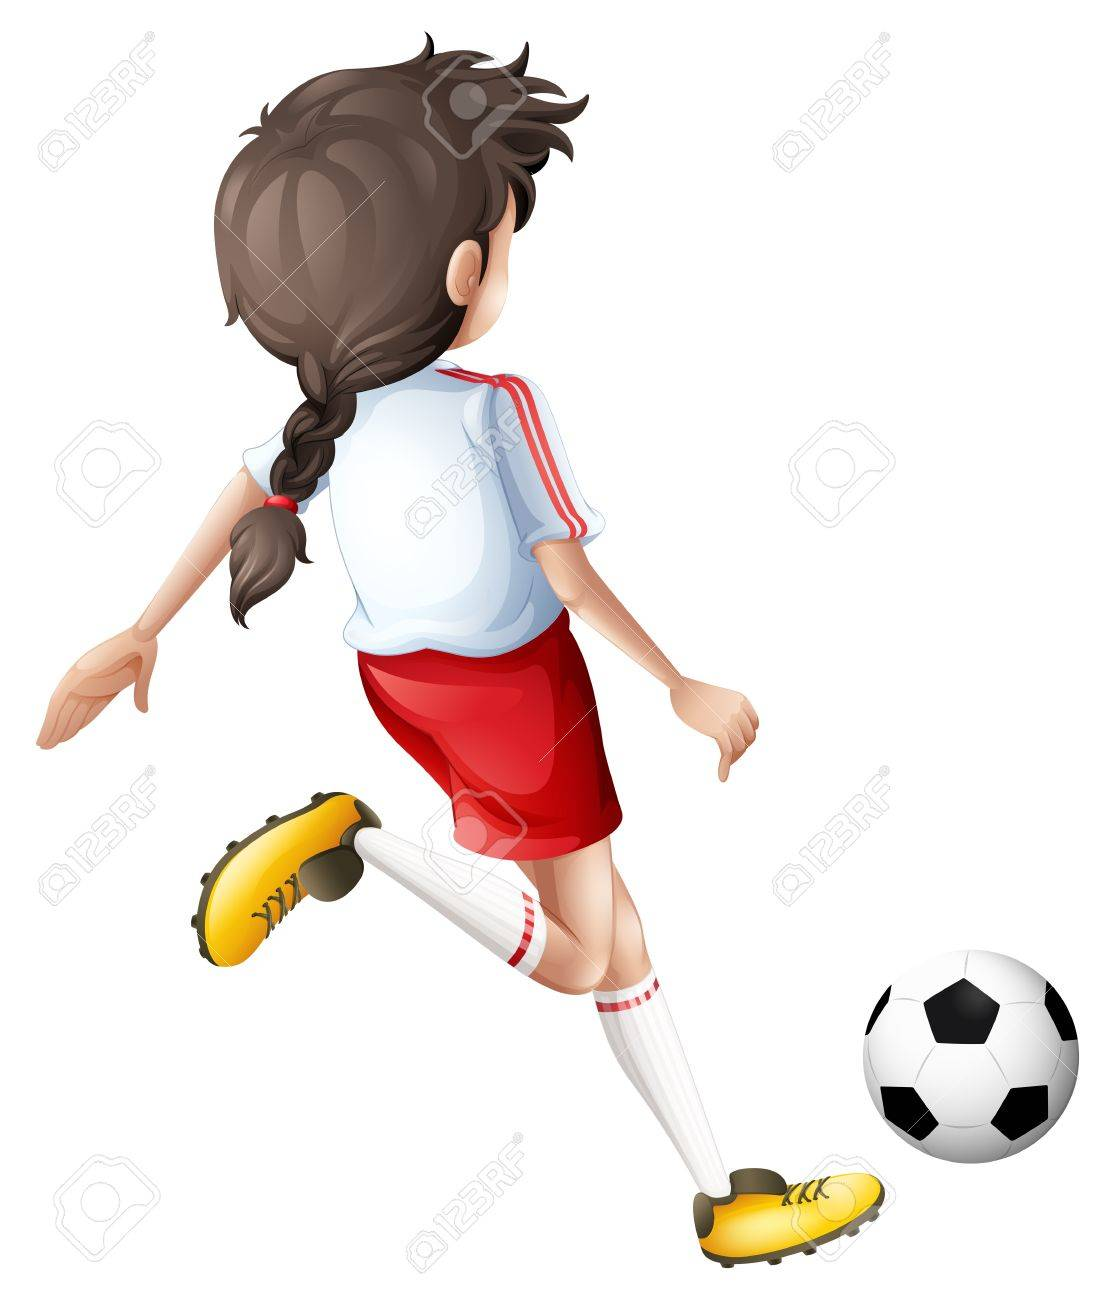 Illustration of a girl kicking a soccer ball on a white background Stock Vector - 19959213